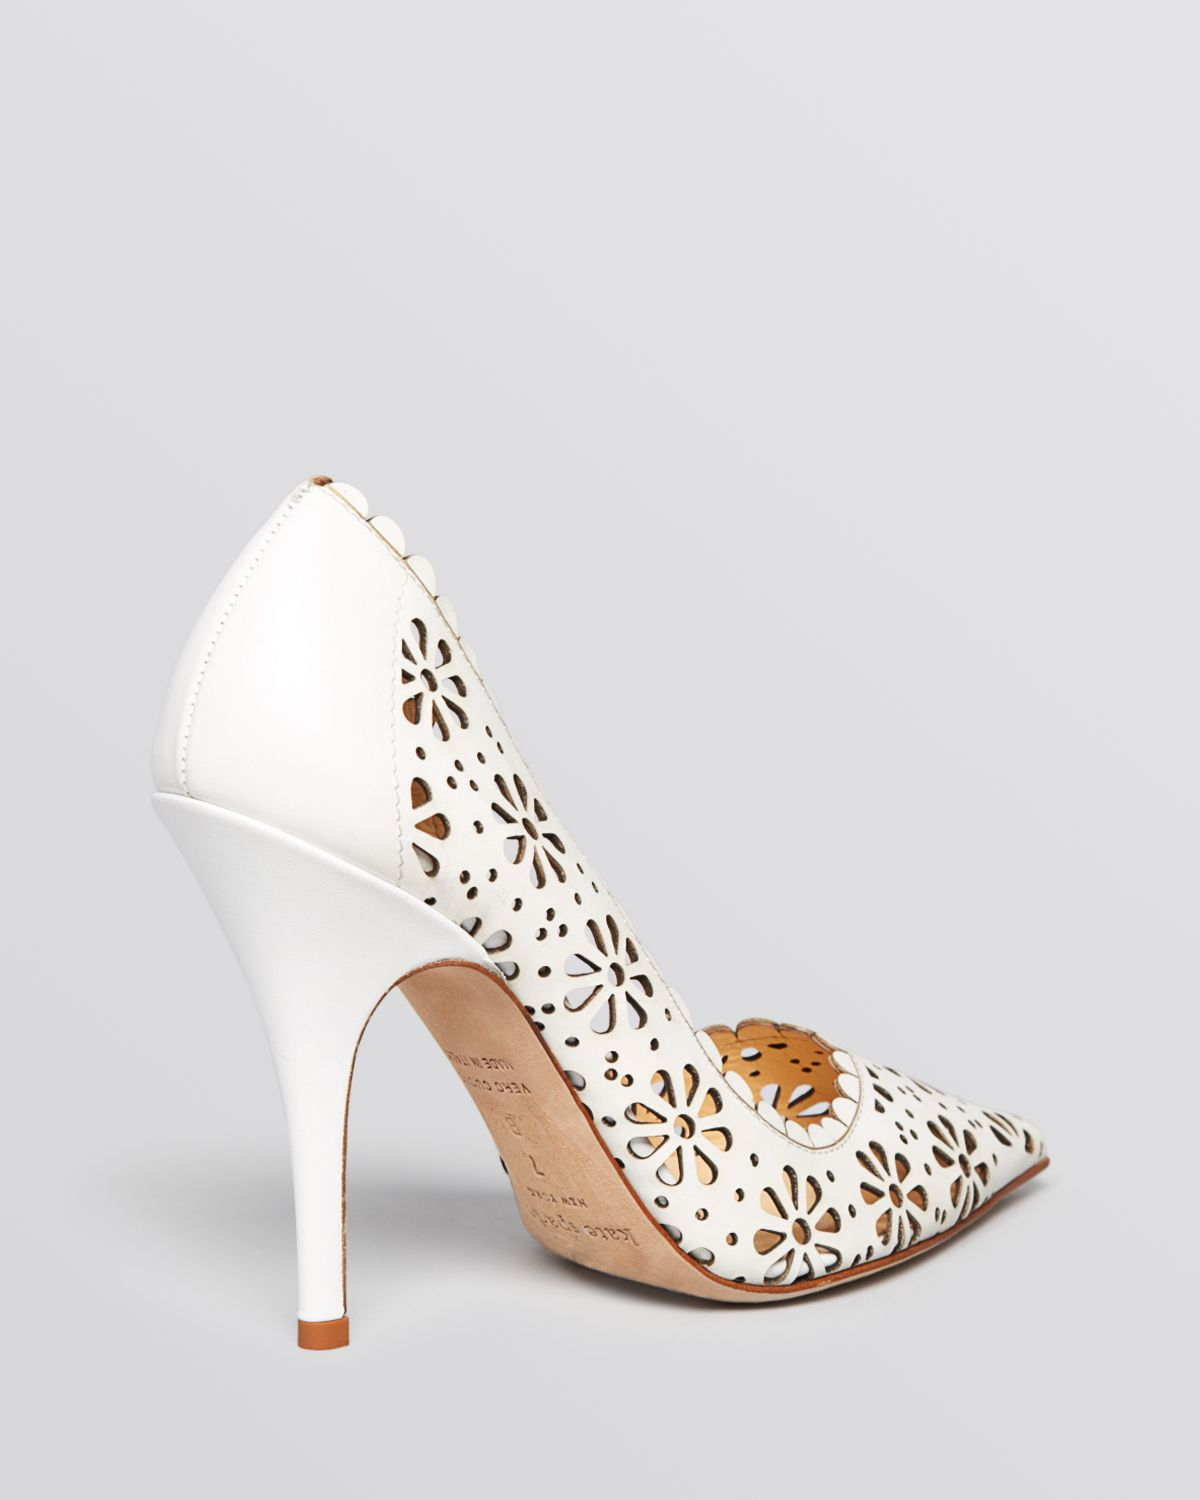 outlet excellent clearance choice Kate Spade New York Perforated Pointed-Toe Pumps huge surprise cheap price outlet explore find great sale online JnZMArm